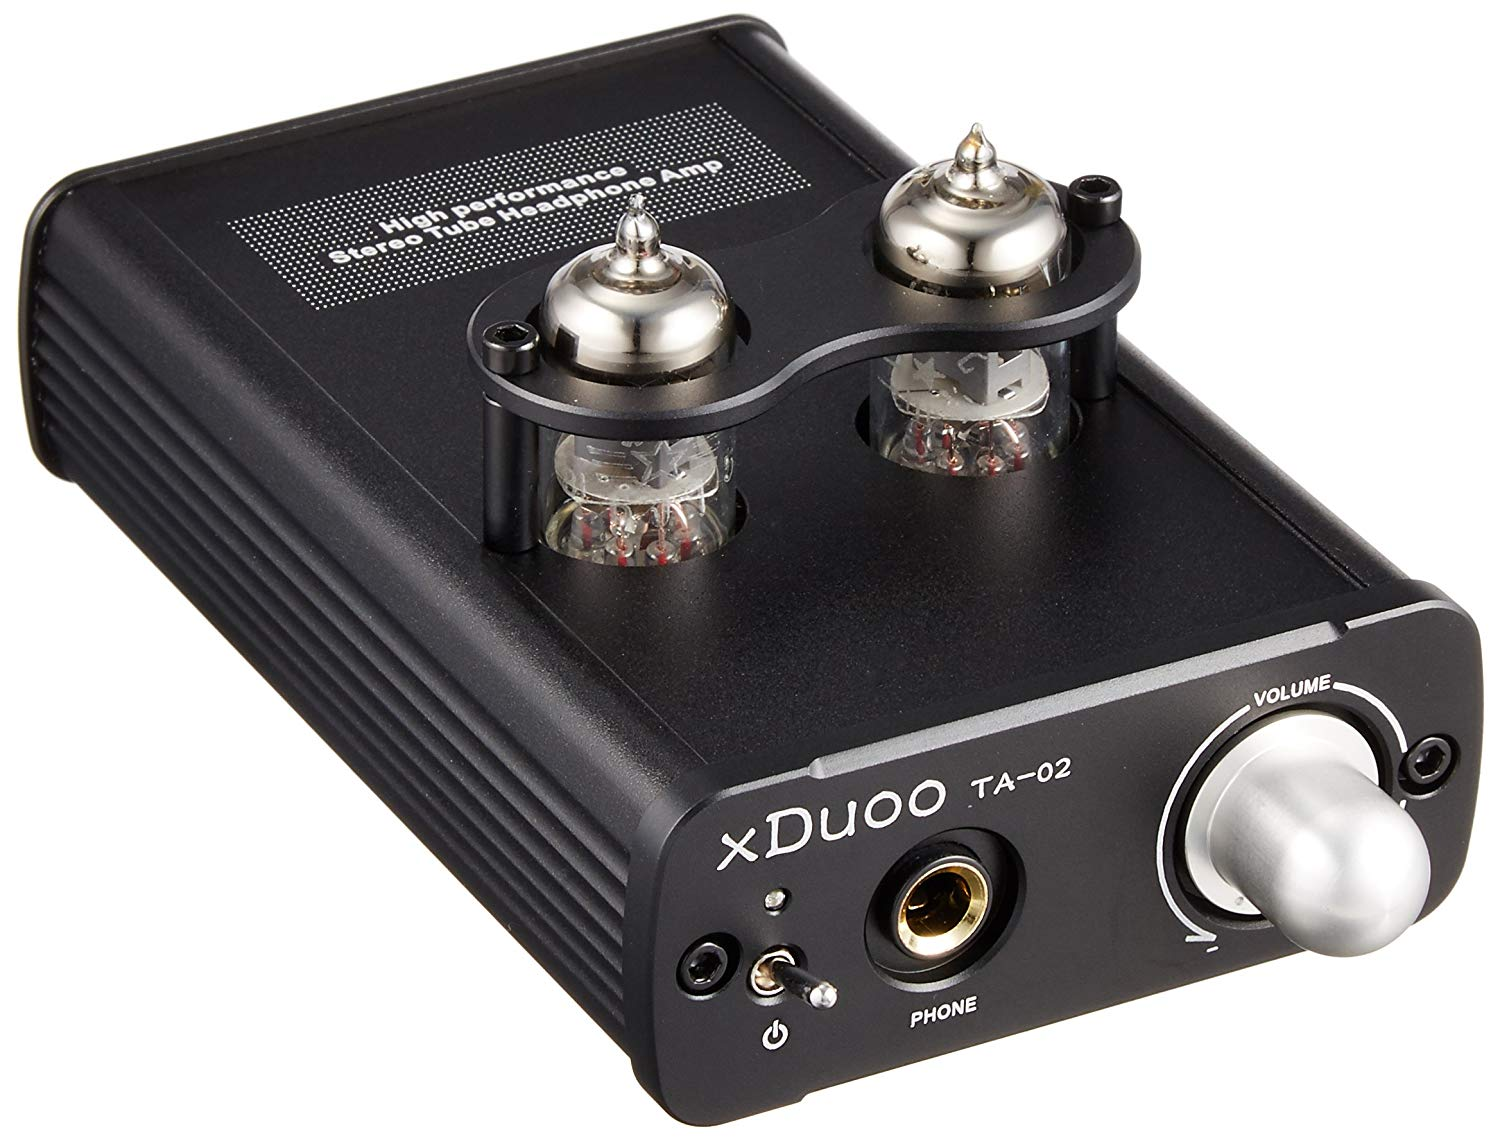 Cheap Hybrid Tube Headphone Amp Find Class A 12au7 Amplifier Get Quotations Xduoo Ta02 And Transistor Double 6ji Pre